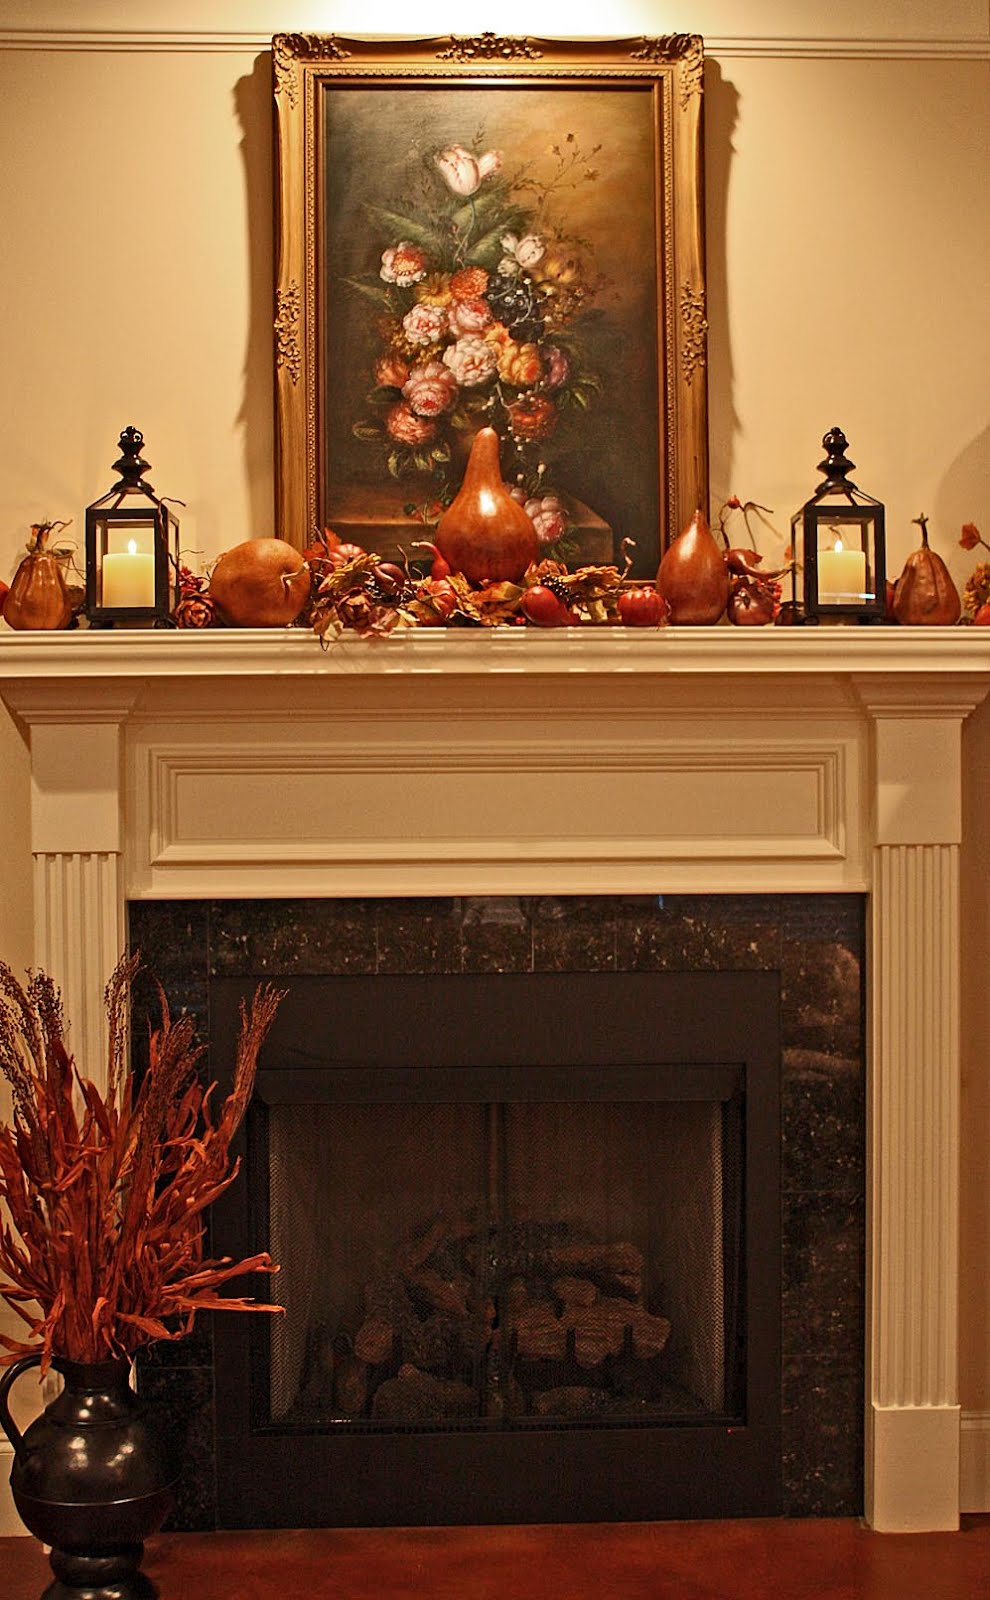 How To Decorate A Fireplace Mantel New Of How to Decorate a Mantel with Lanterns Photo